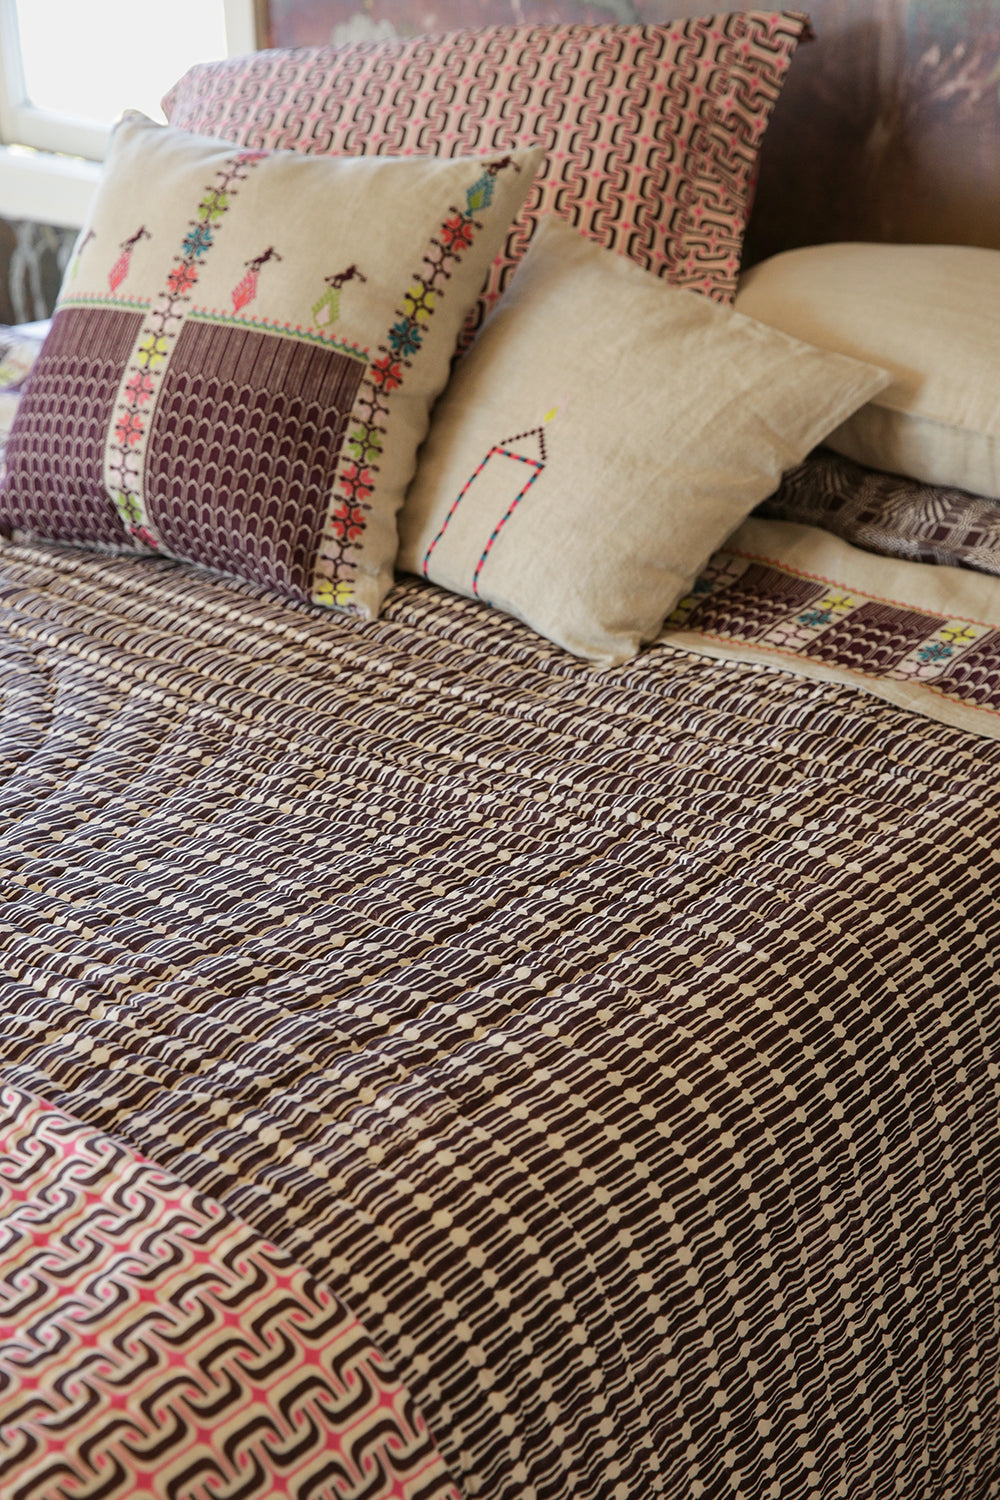 hand-stitched quilt in jacobsen